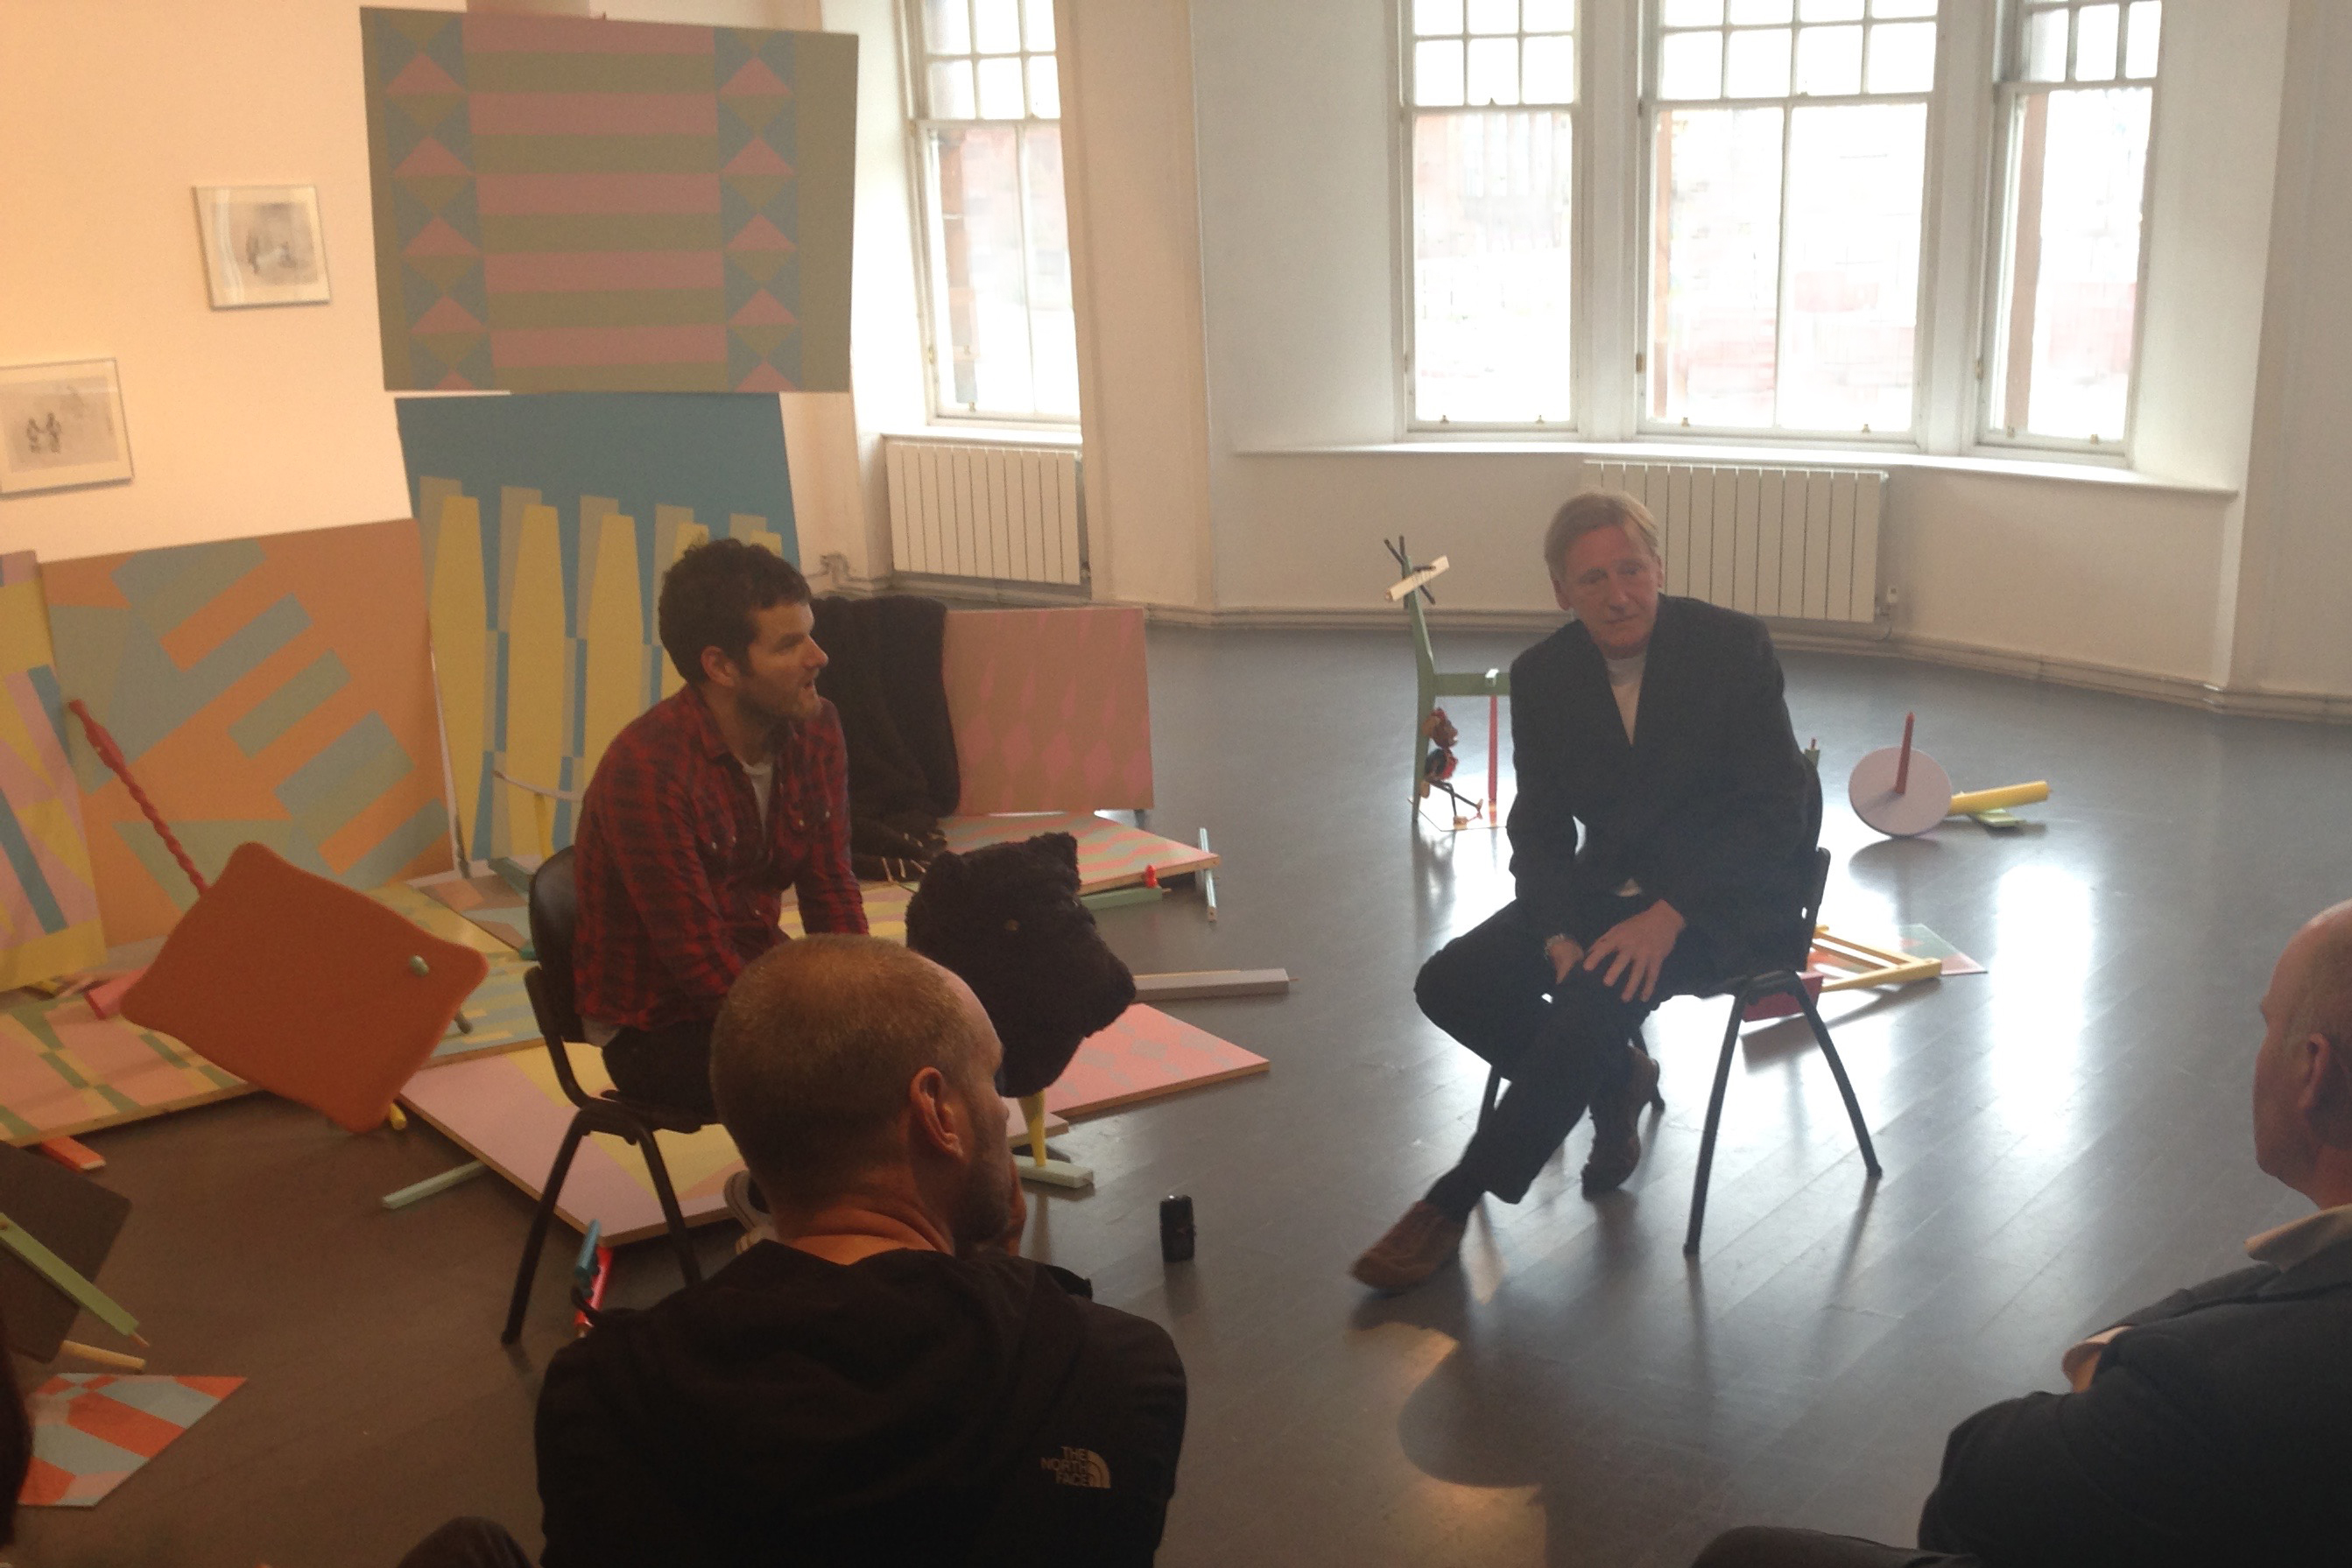 images of the discussion between artist Danny Holcroft and GSA MFA Director John Calcutt at 'Lost in Translation' 12 to 18 June 2016 An installation of drawings, paintings, sculptures, performance and video by Danny Holcroft at The Project Room, Trongate 103, Glasgow © Cultural Documents